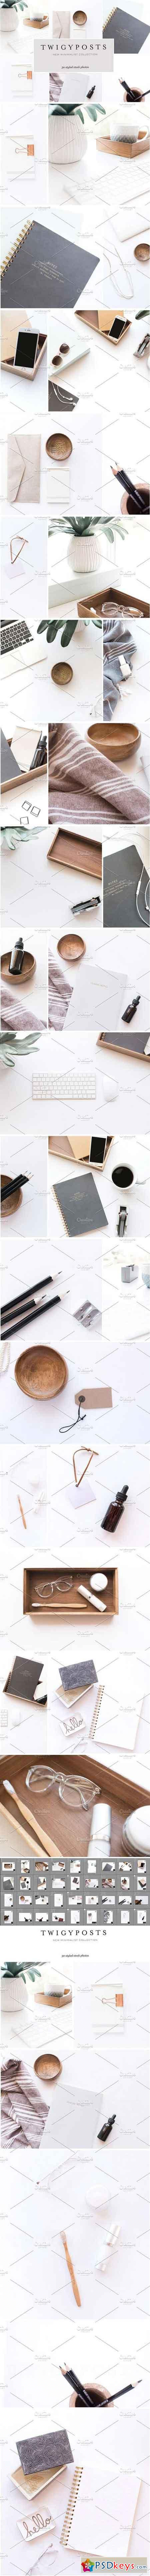 Minimalist Stock Photo Bundle 1599305